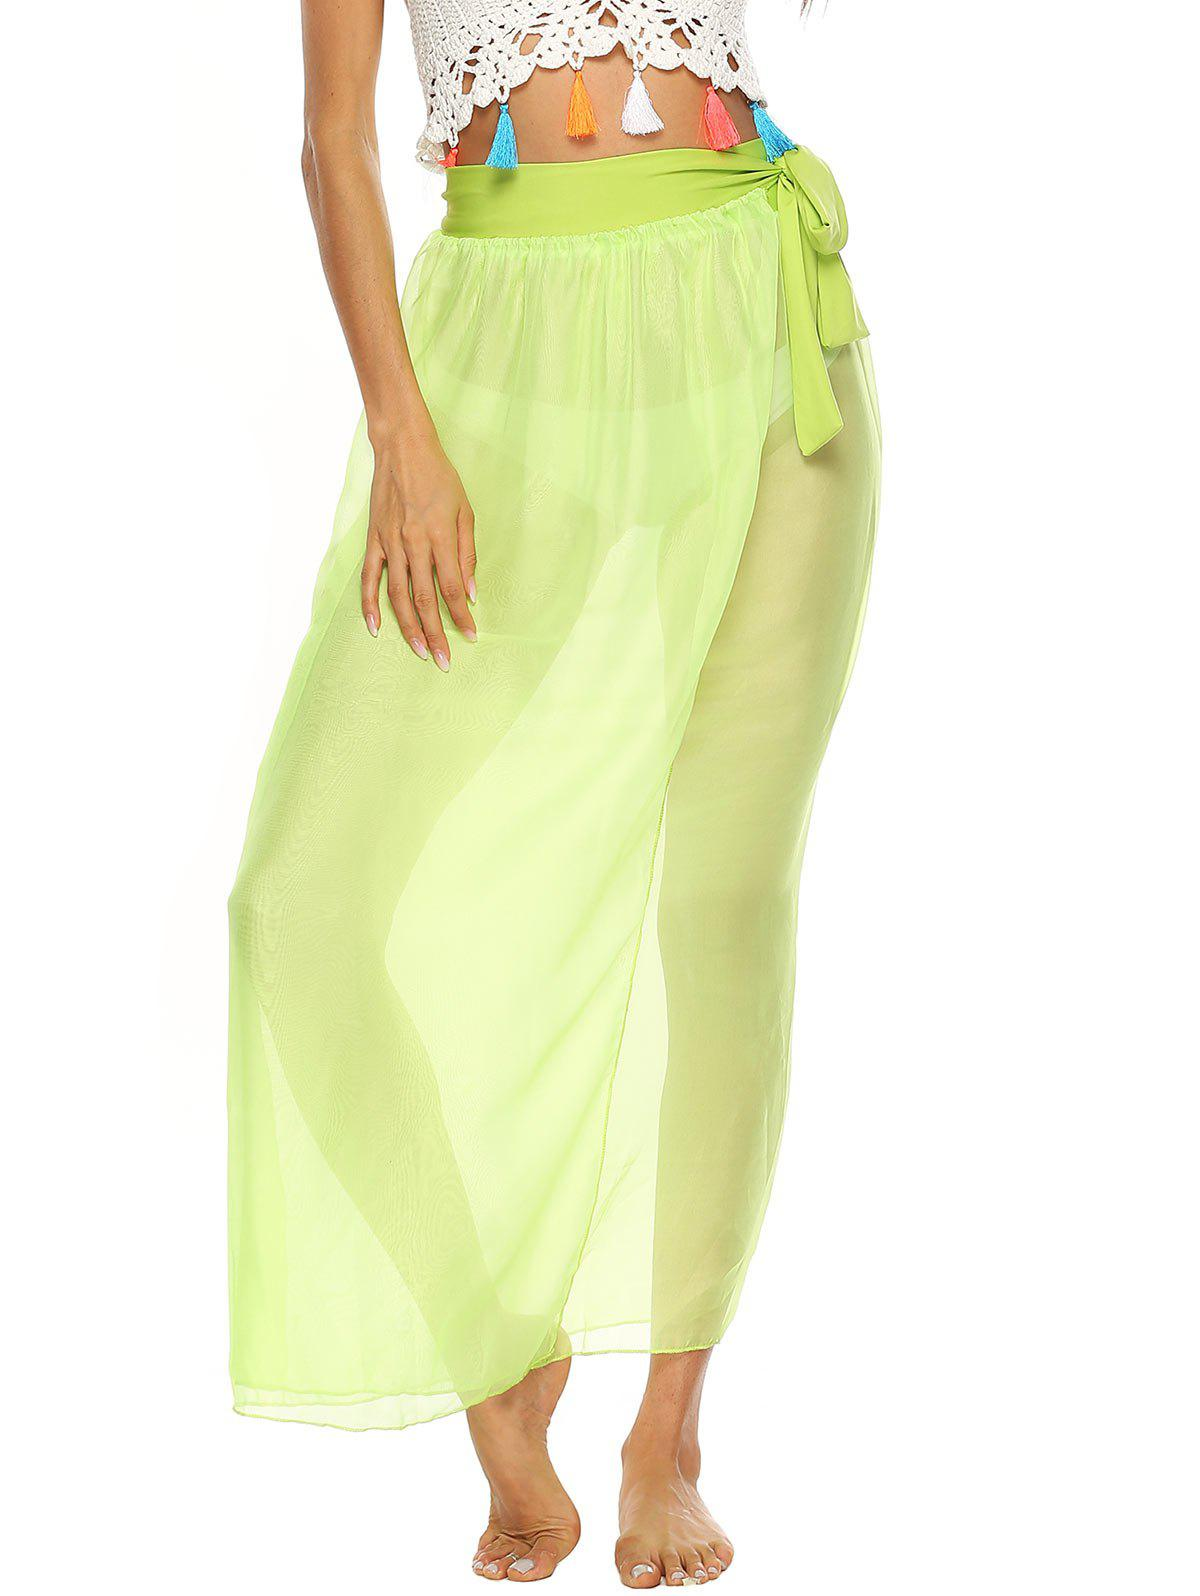 Sheer Wrap Maxi Cover Up Skirt - GREEN YELLOW L